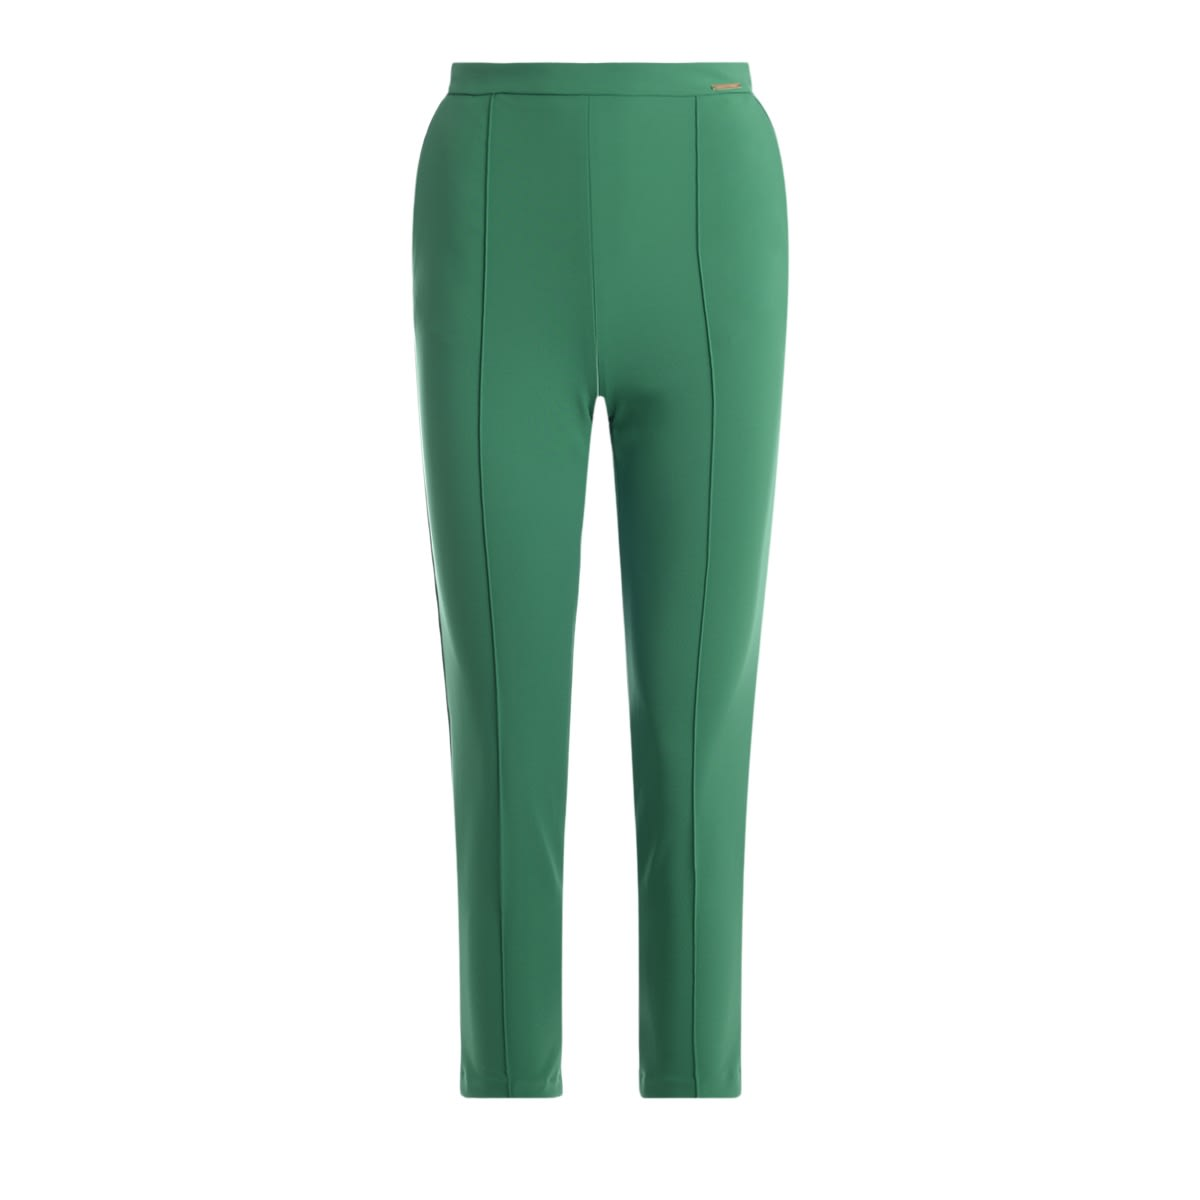 Elisabetta Franchi Trousers Made Of Green Fabric